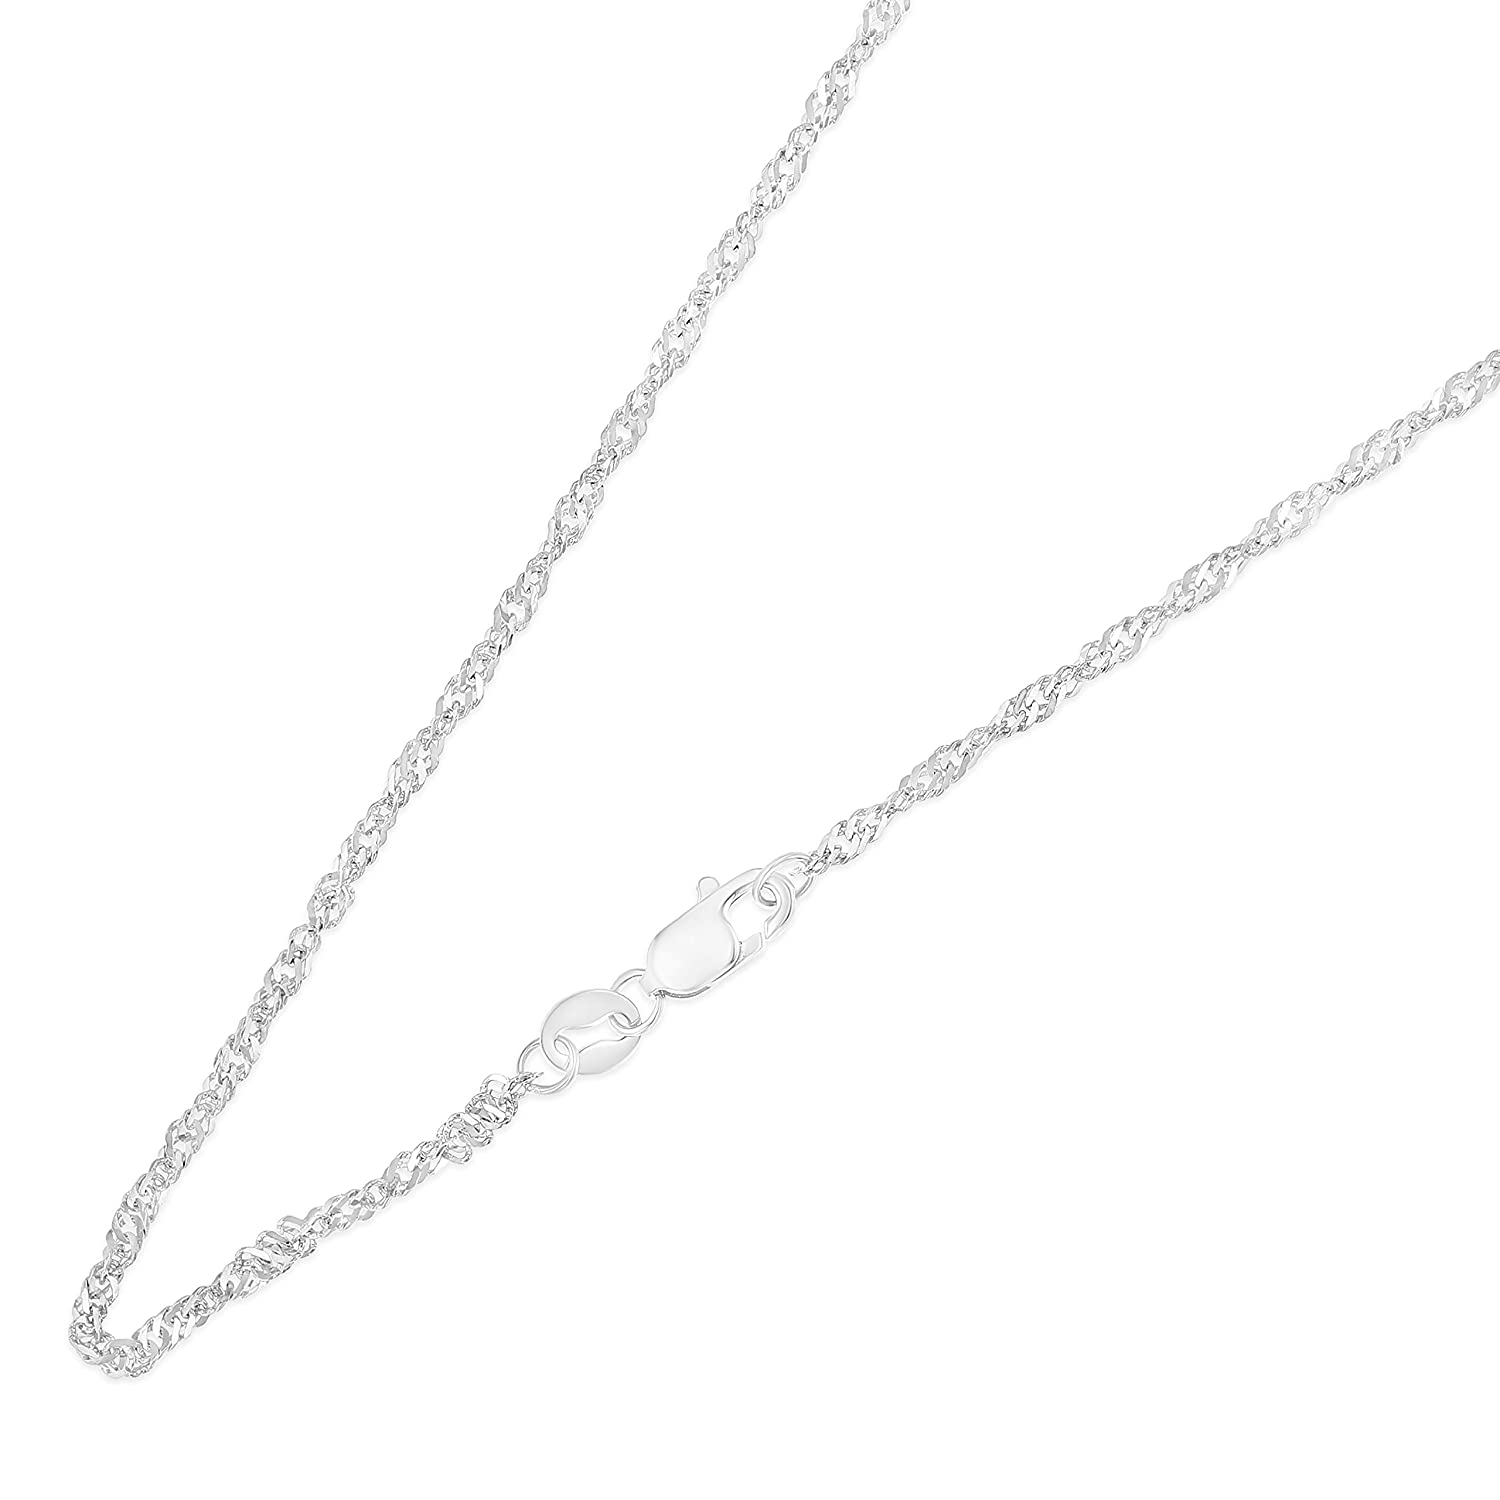 14K Yellow Ioka White OR Tricolor Solid Gold 1.8mm Singapore Chain Necklace with Lobster Clasp